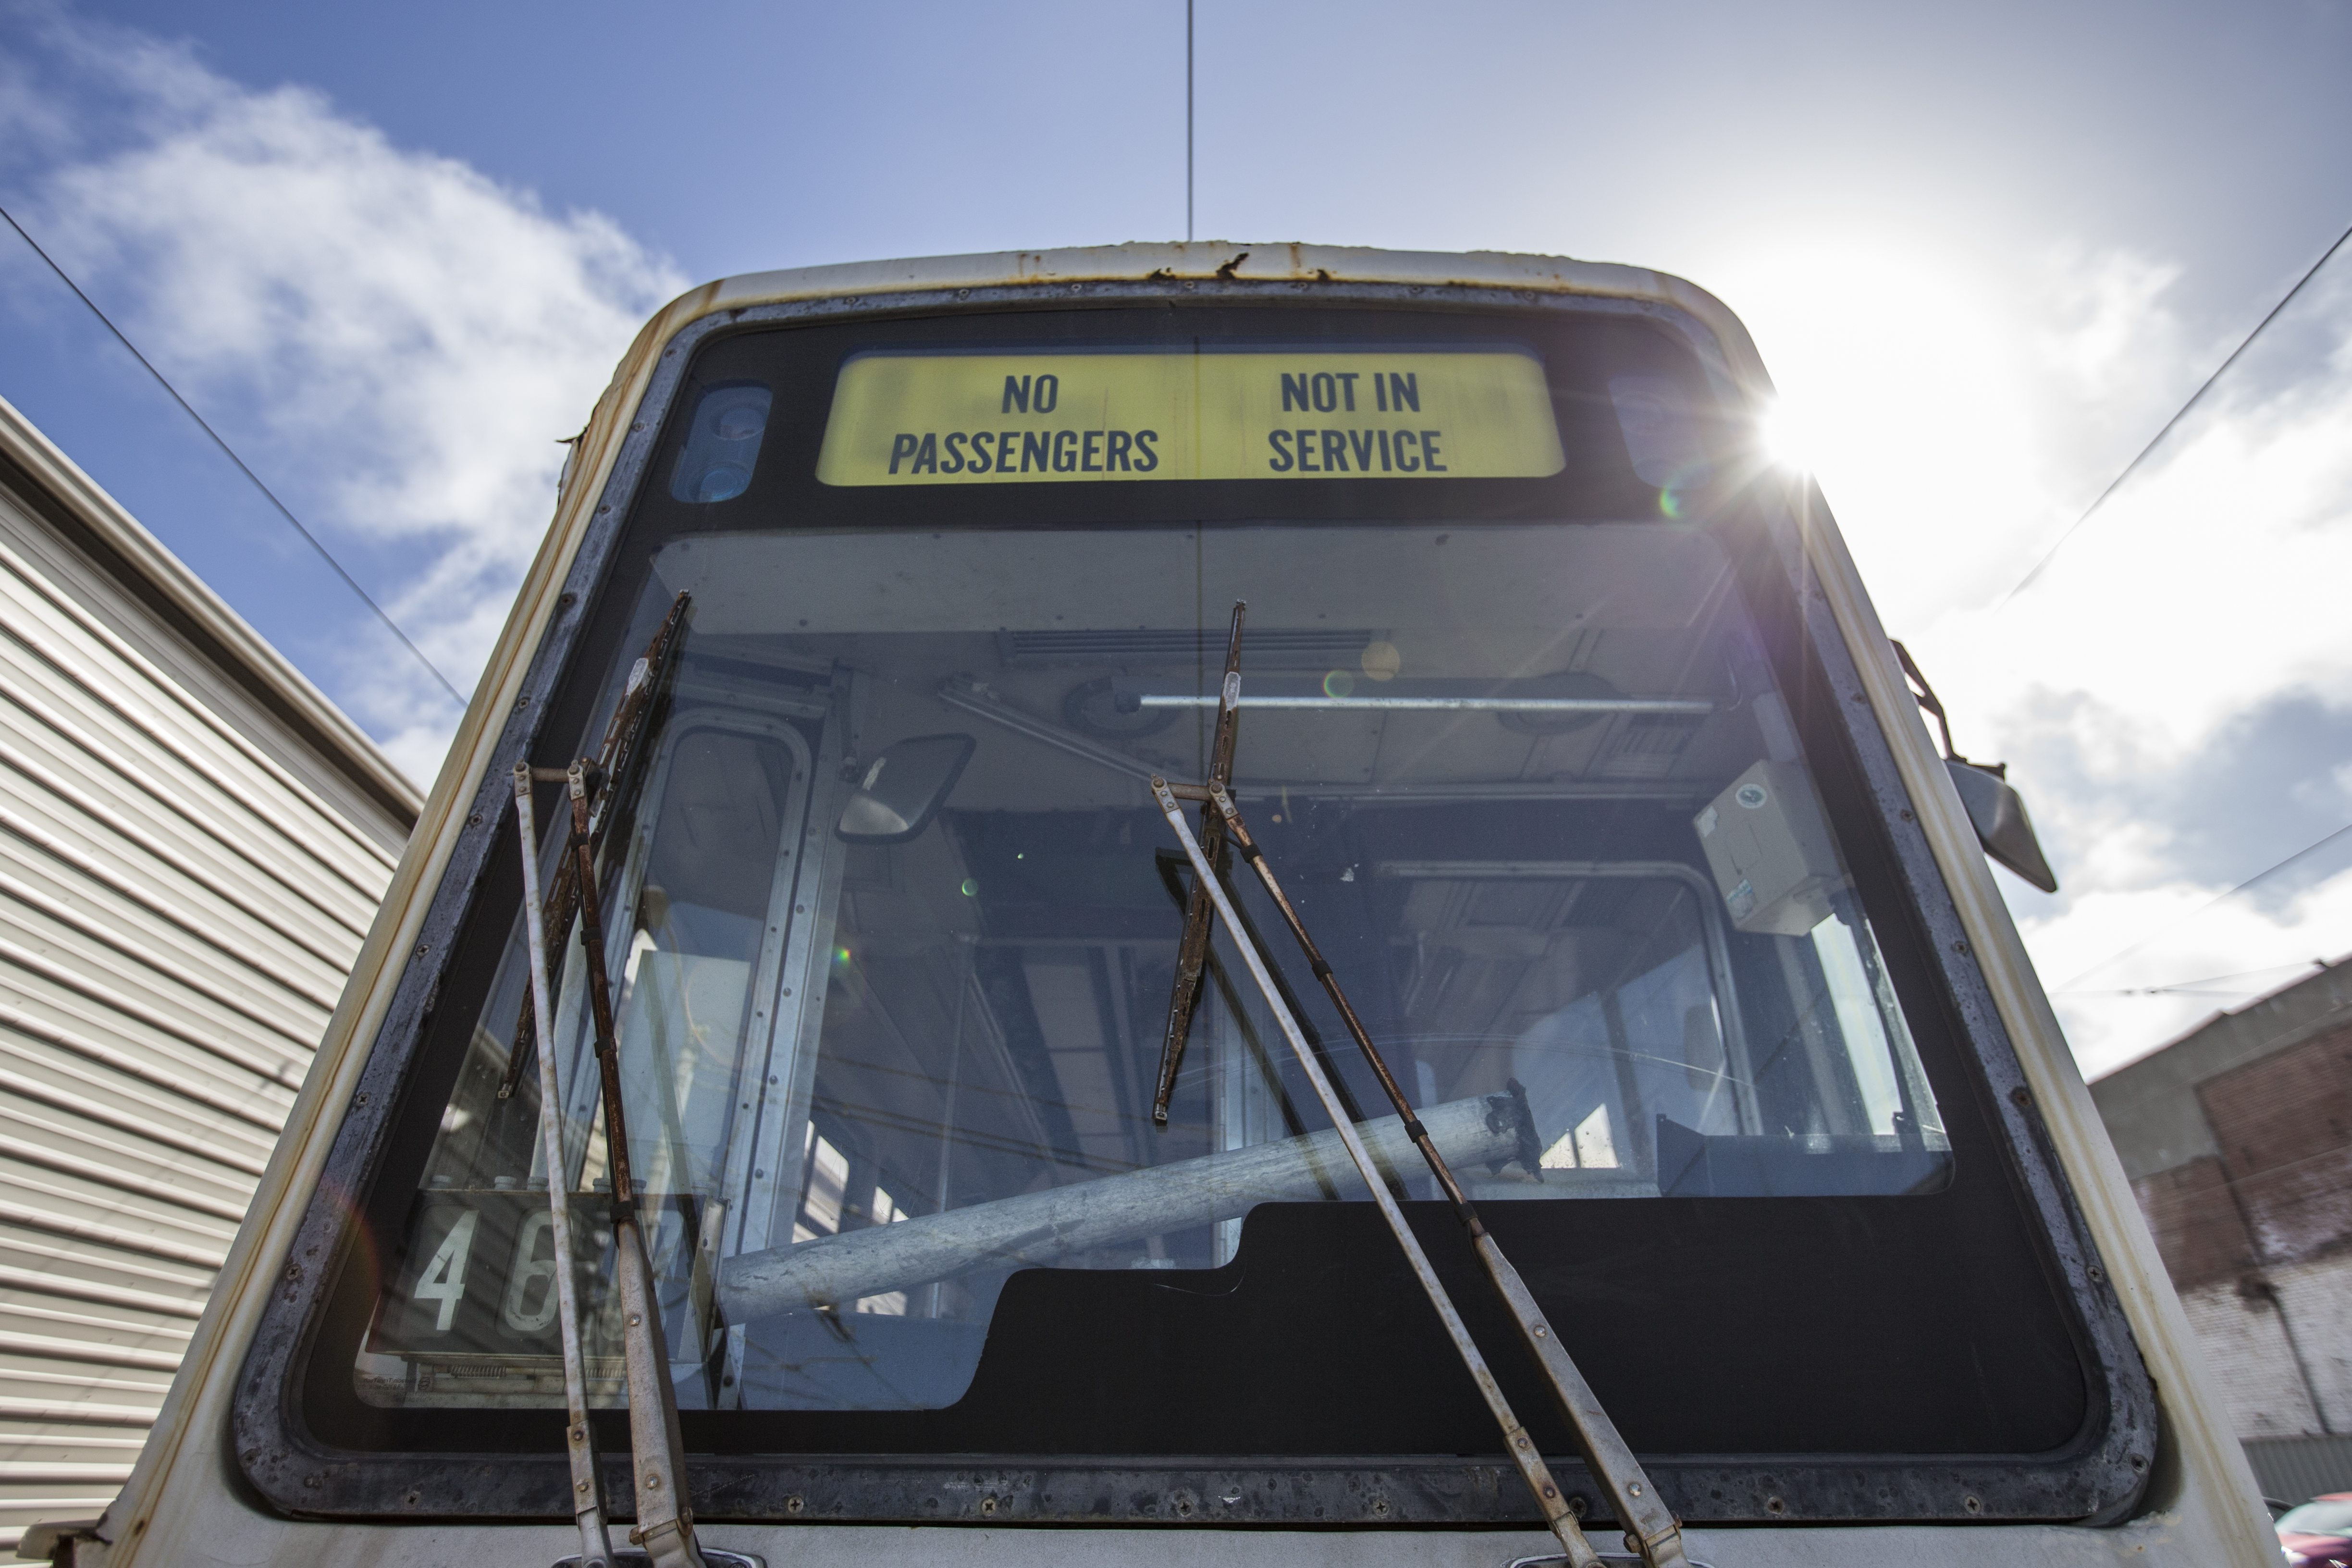 A MUNI light rail vehicle from the 1980s is seen at the Cameron Beach Yard in San Francisco, Calif. Wednesday, March 30, 2016. (Jessica Christian/S.F. Examiner)